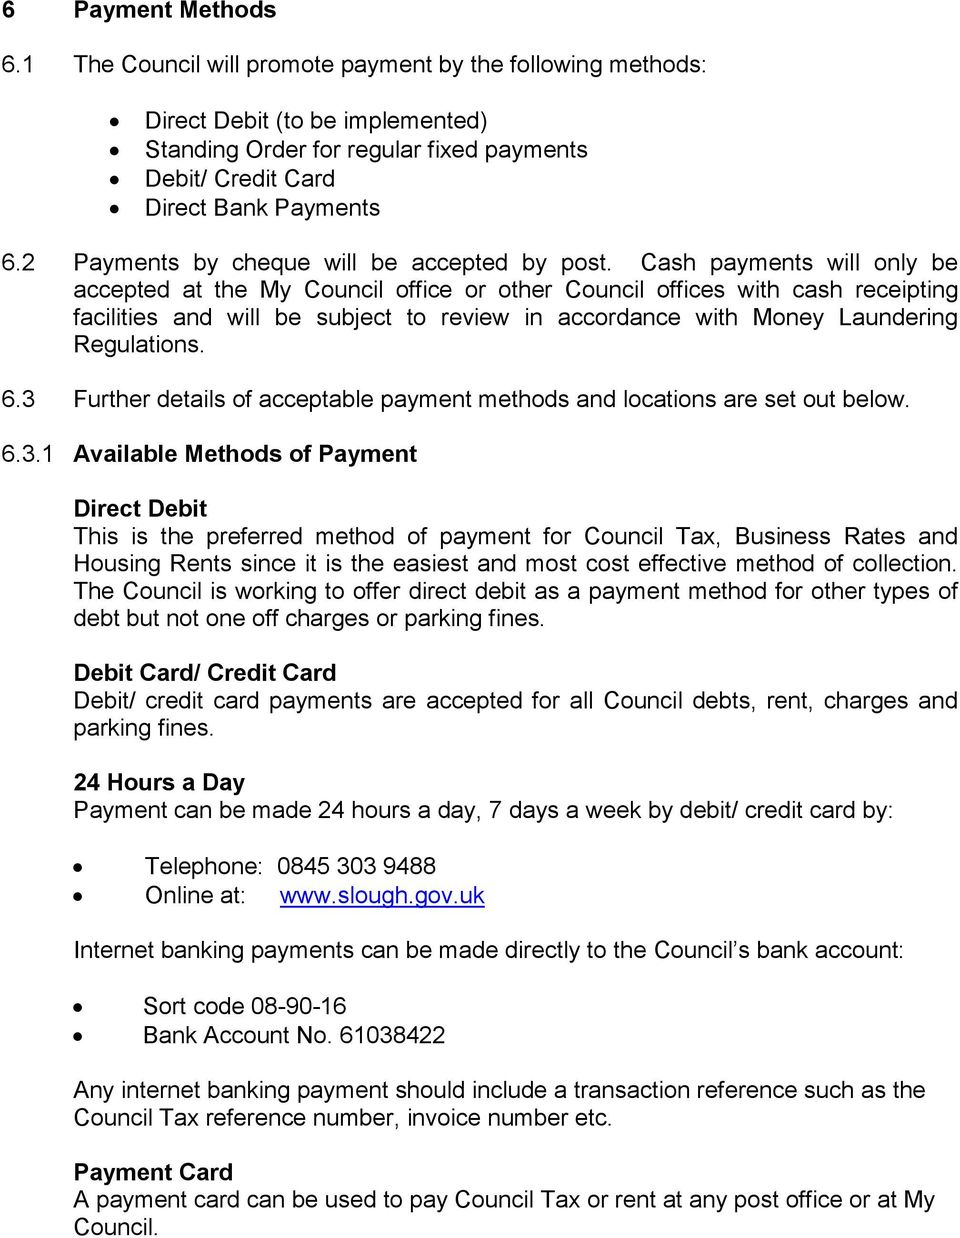 Cash payments will only be accepted at the My Council office or other Council offices with cash receipting facilities and will be subject to review in accordance with Money Laundering Regulations. 6.